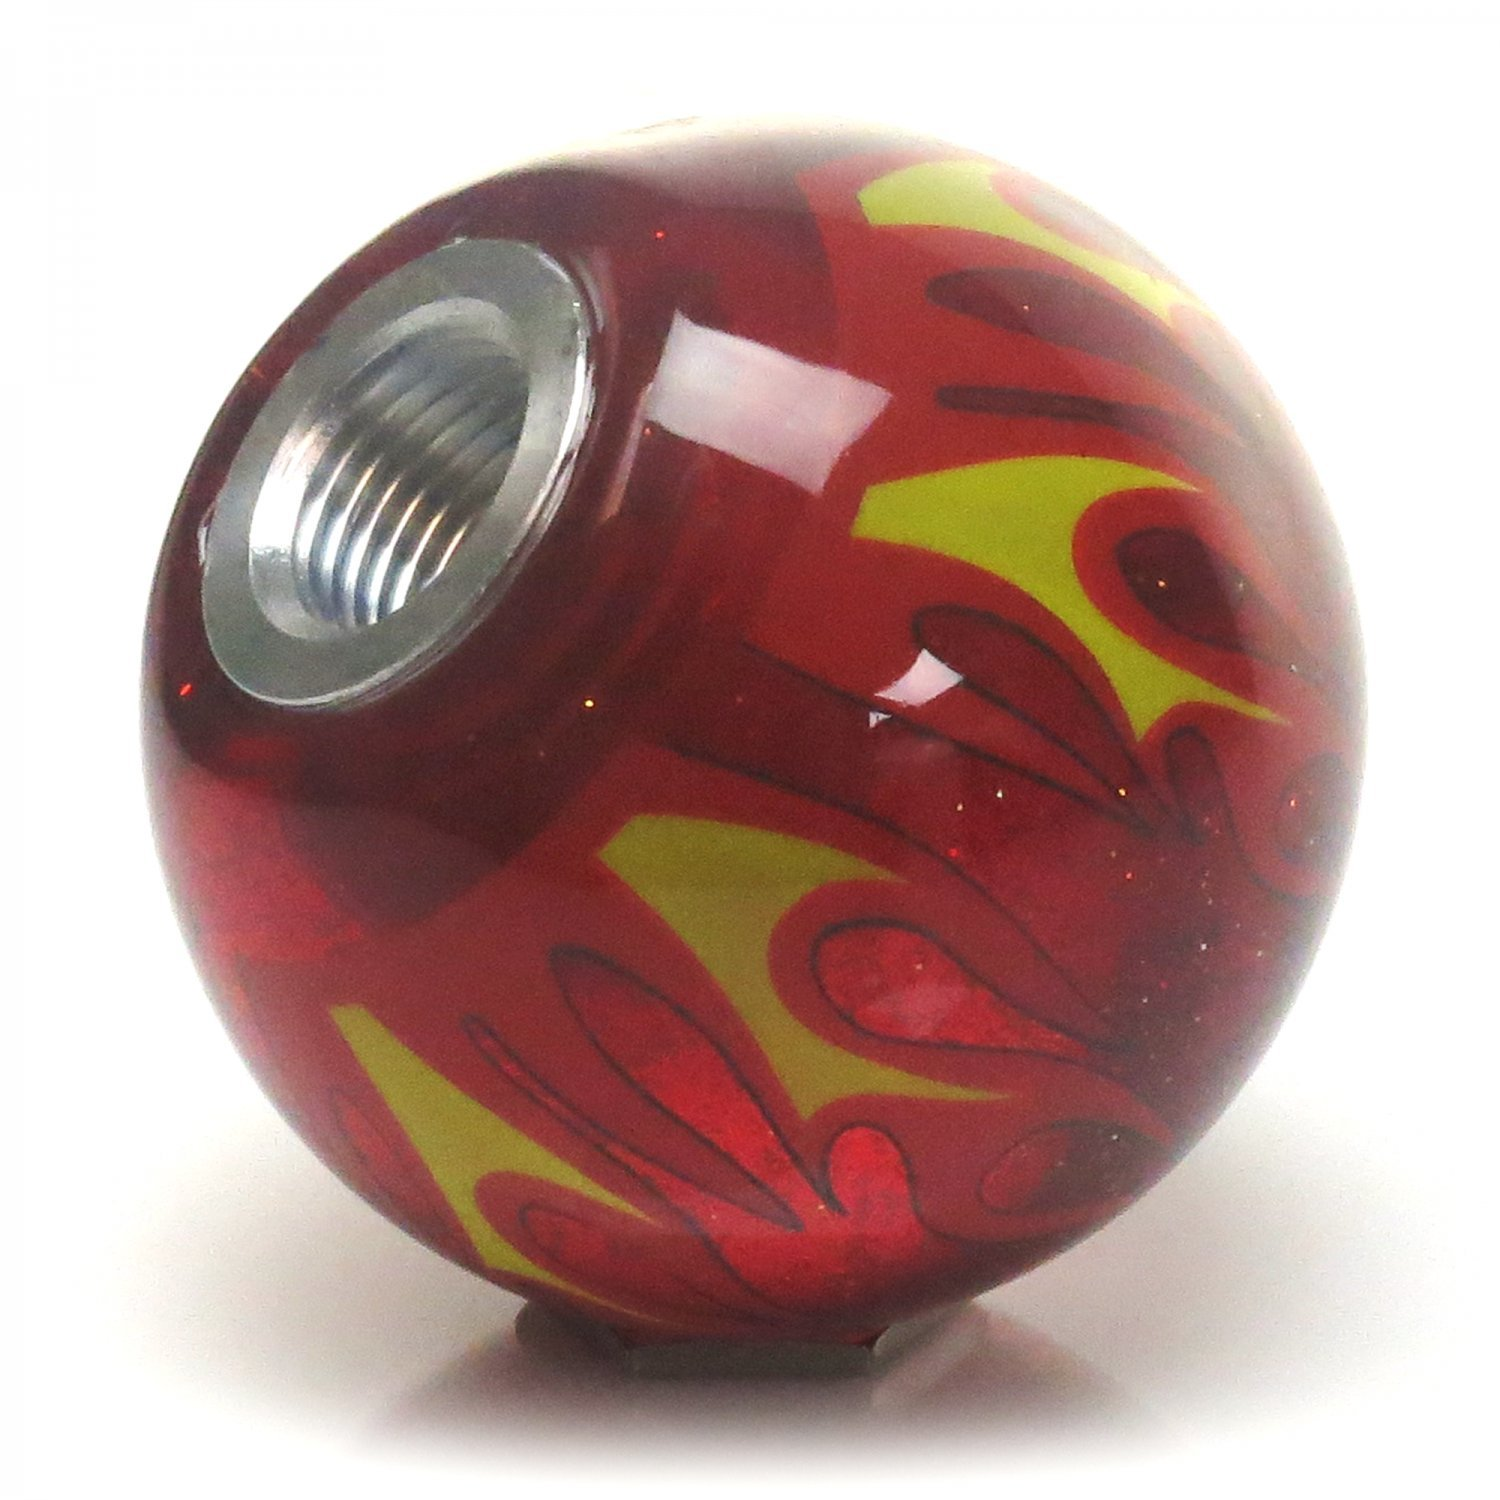 Blue Skulls /& Gothic Skull /& Crossed Swords American Shifter 241214 Red Flame Metal Flake Shift Knob with M16 x 1.5 Insert